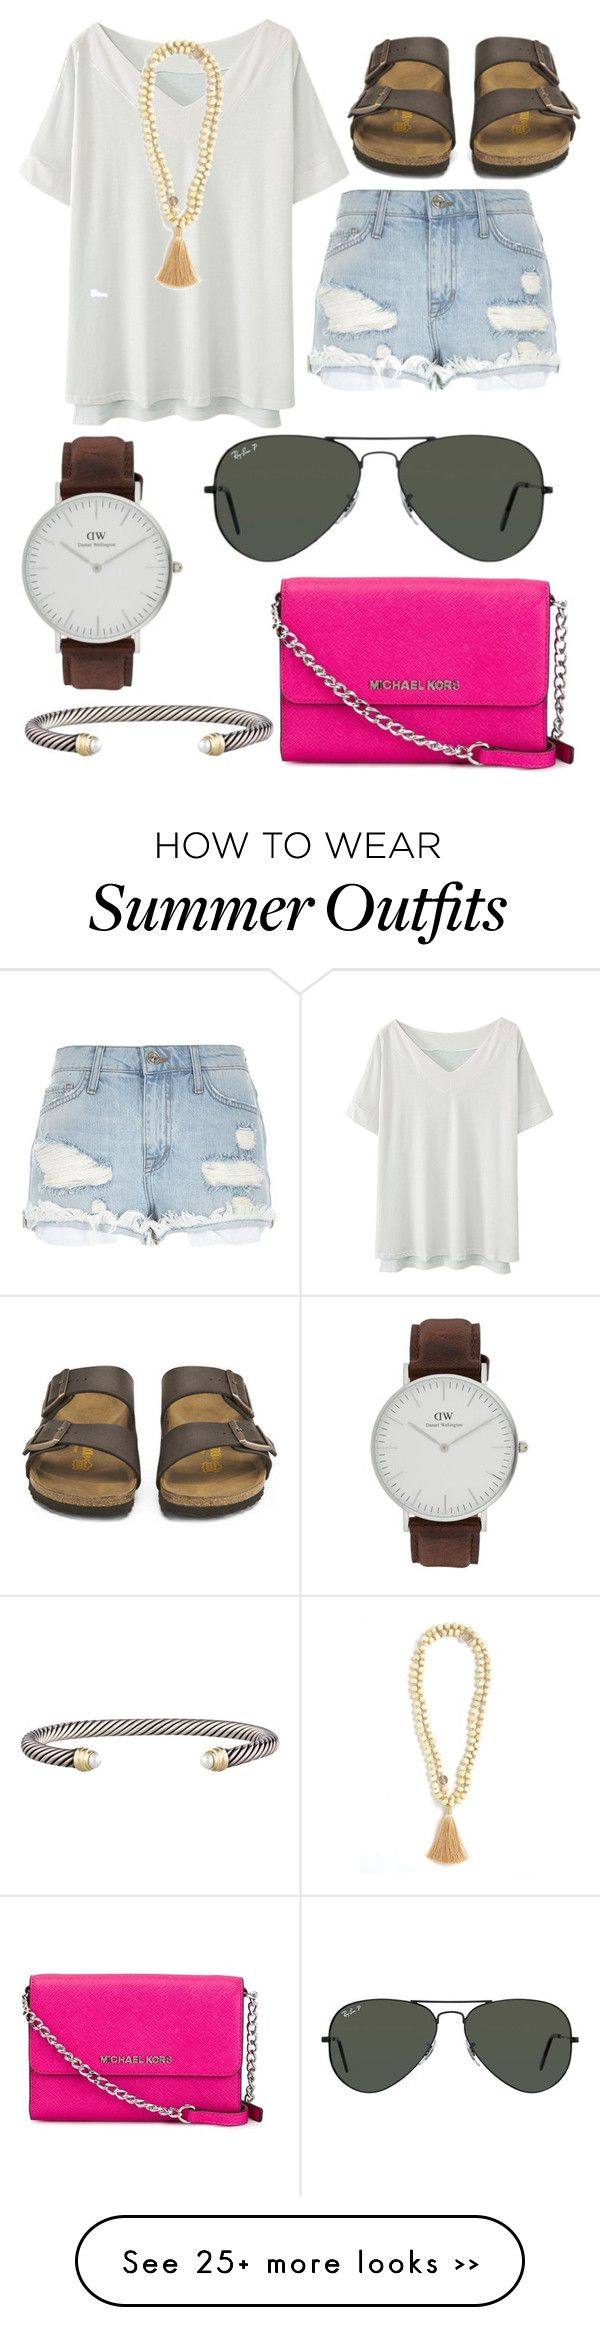 """summer outfit"" by gracecrider12 on Polyvore"